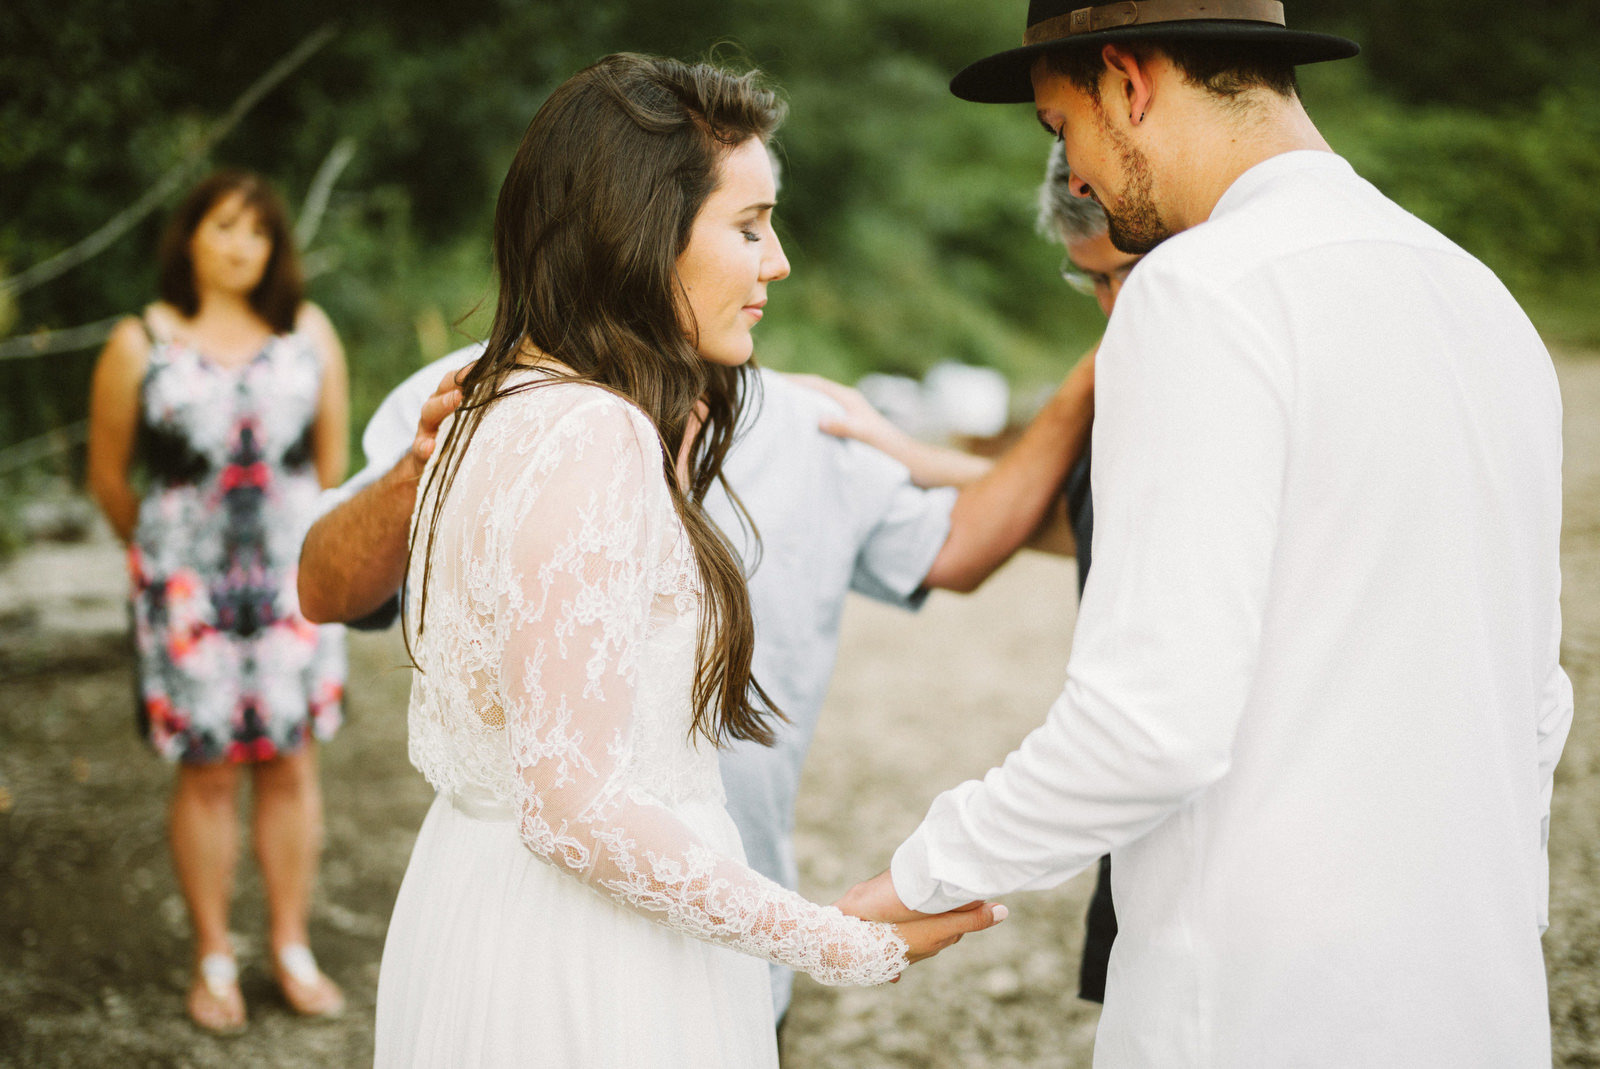 athena-and-camron-seattle-elopement-wedding-benj-haisch-rattlesnake-lake-christian-couple-goals56